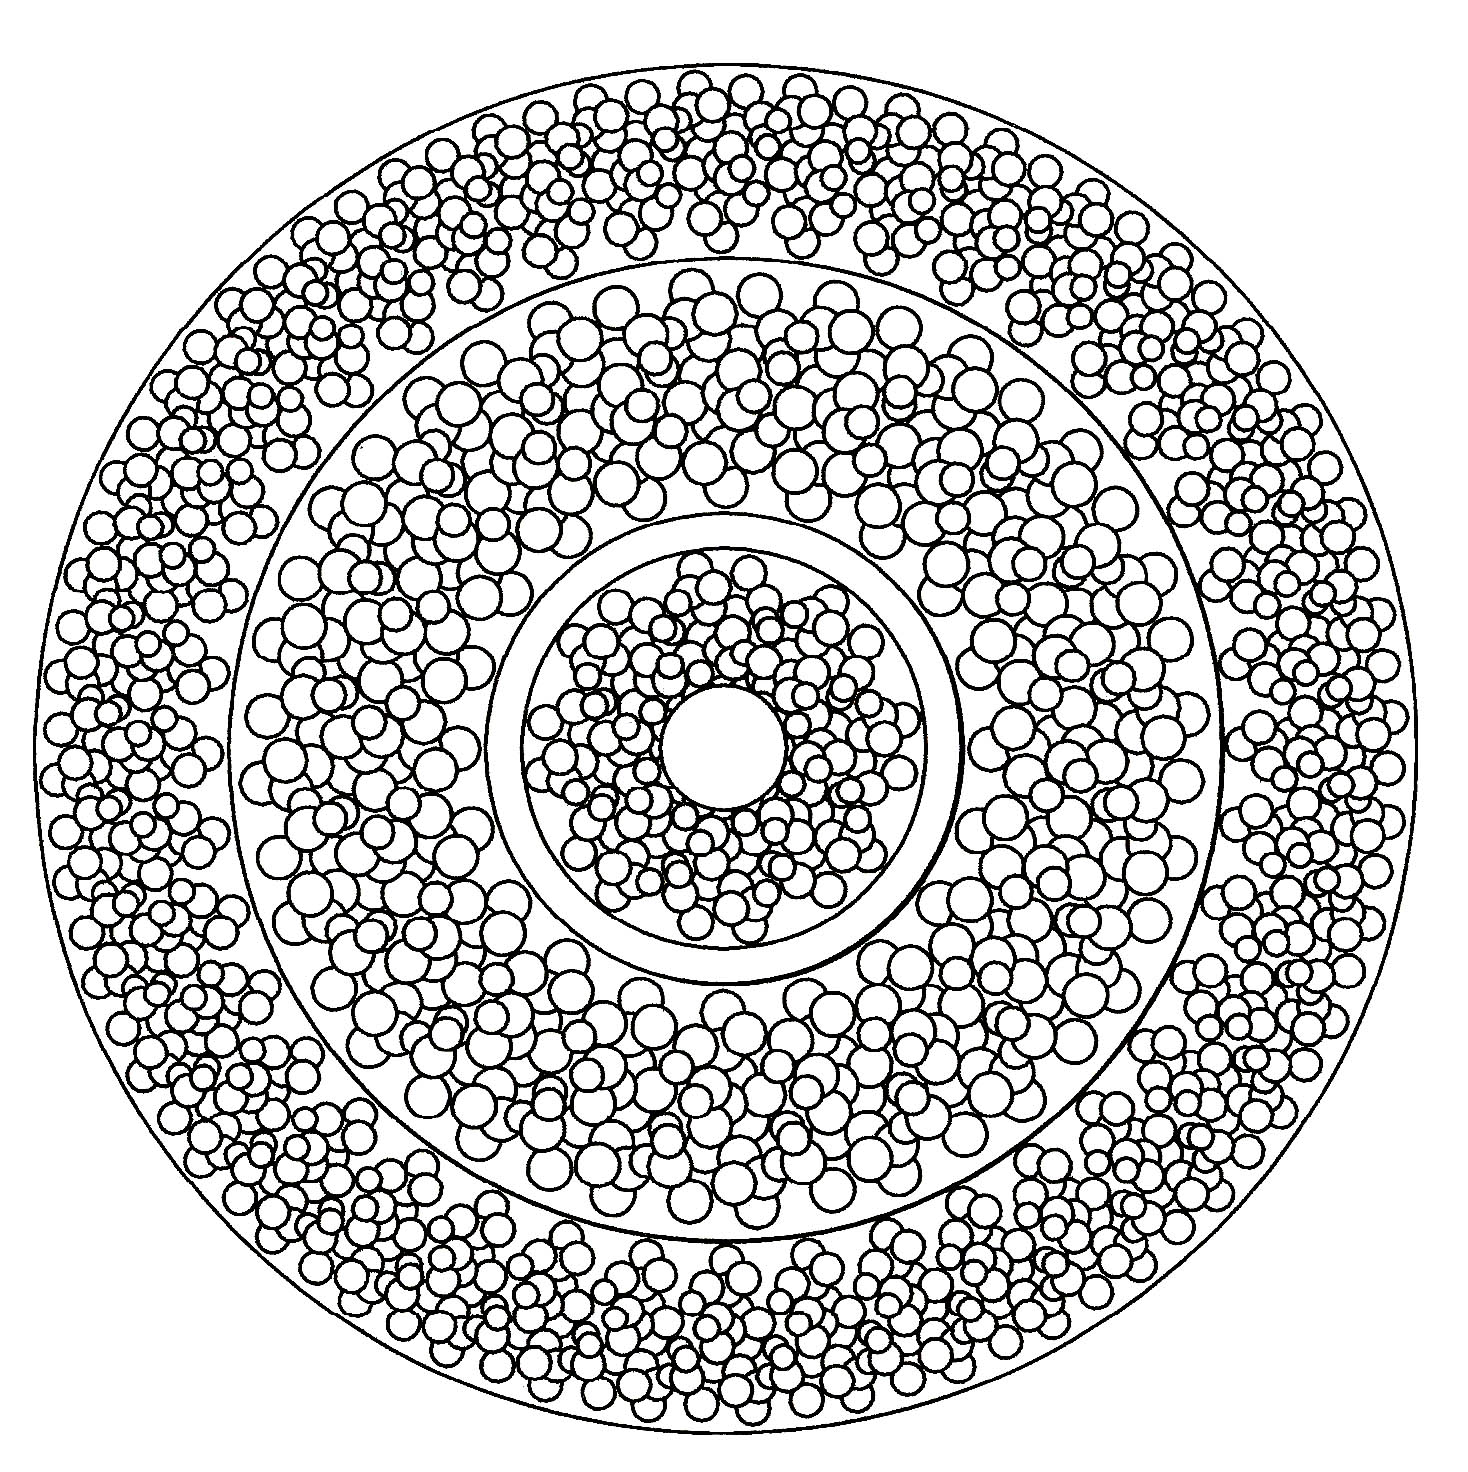 Colouring in pages mandala - Coloring Page Simple Mandala 3